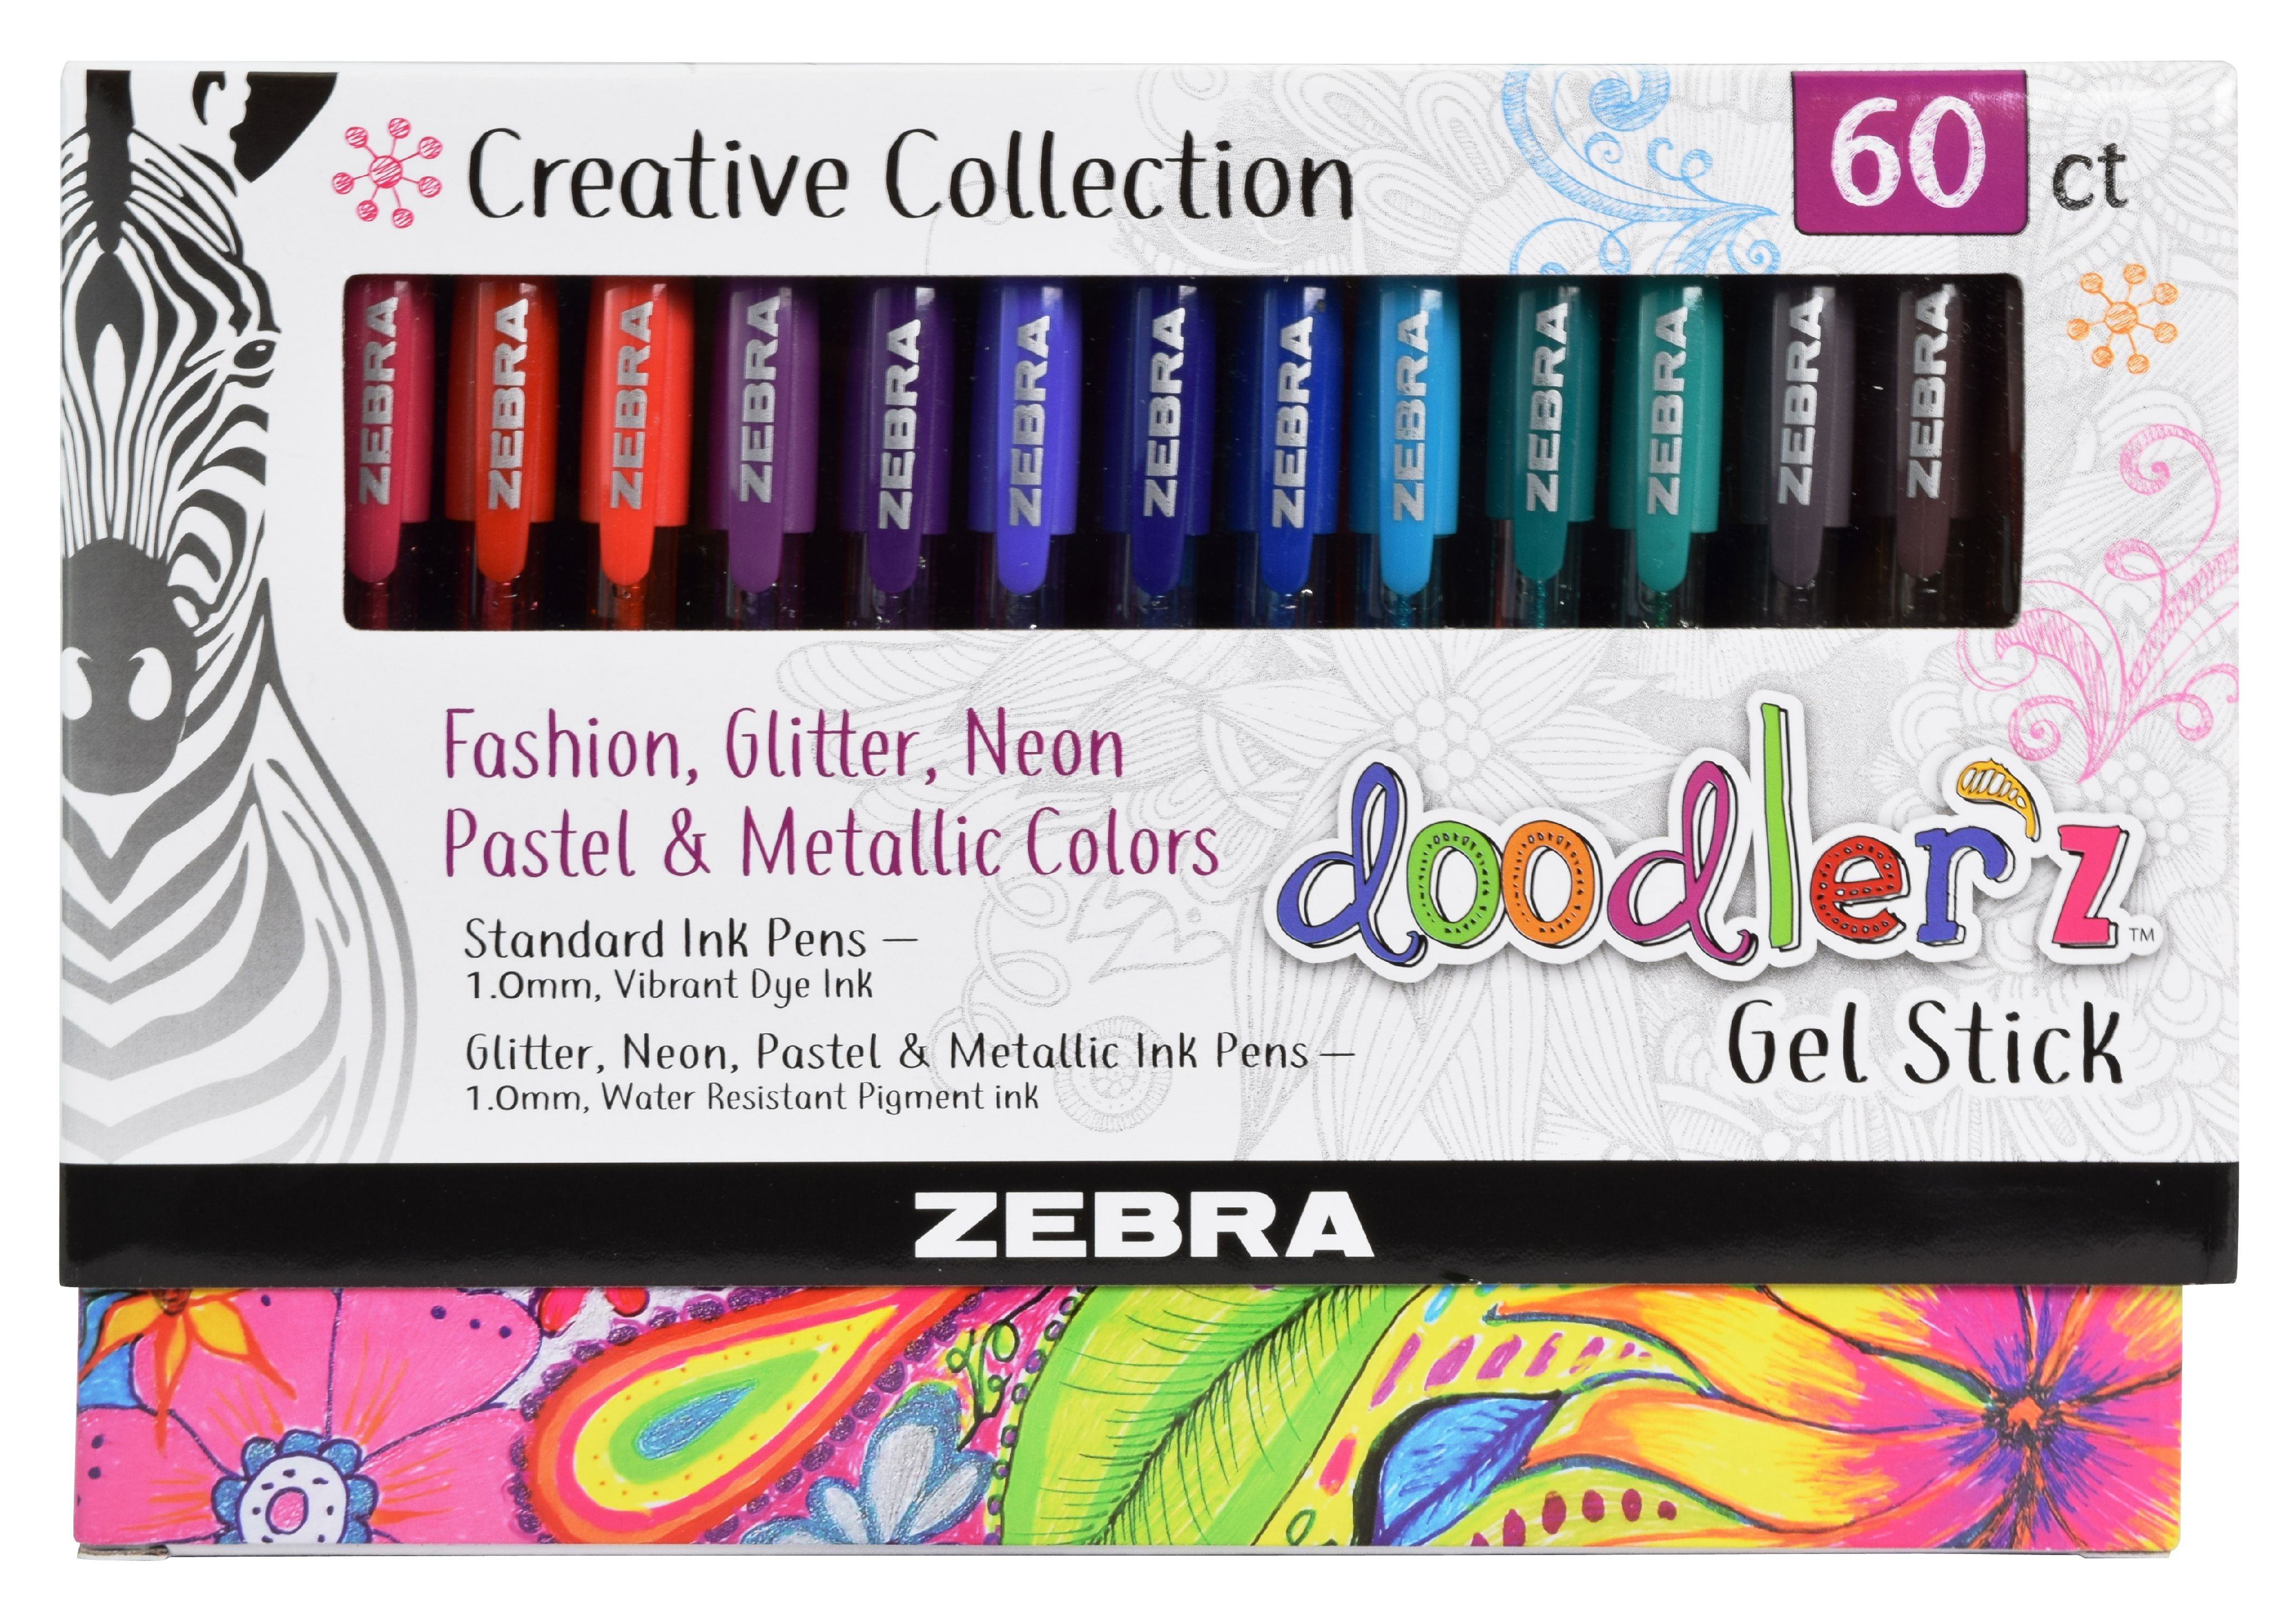 Zebra Pen Doodlerz Gel Stick Pen Mega Set, Bold Point 1.0mm, Assorted Colors, 60-Count